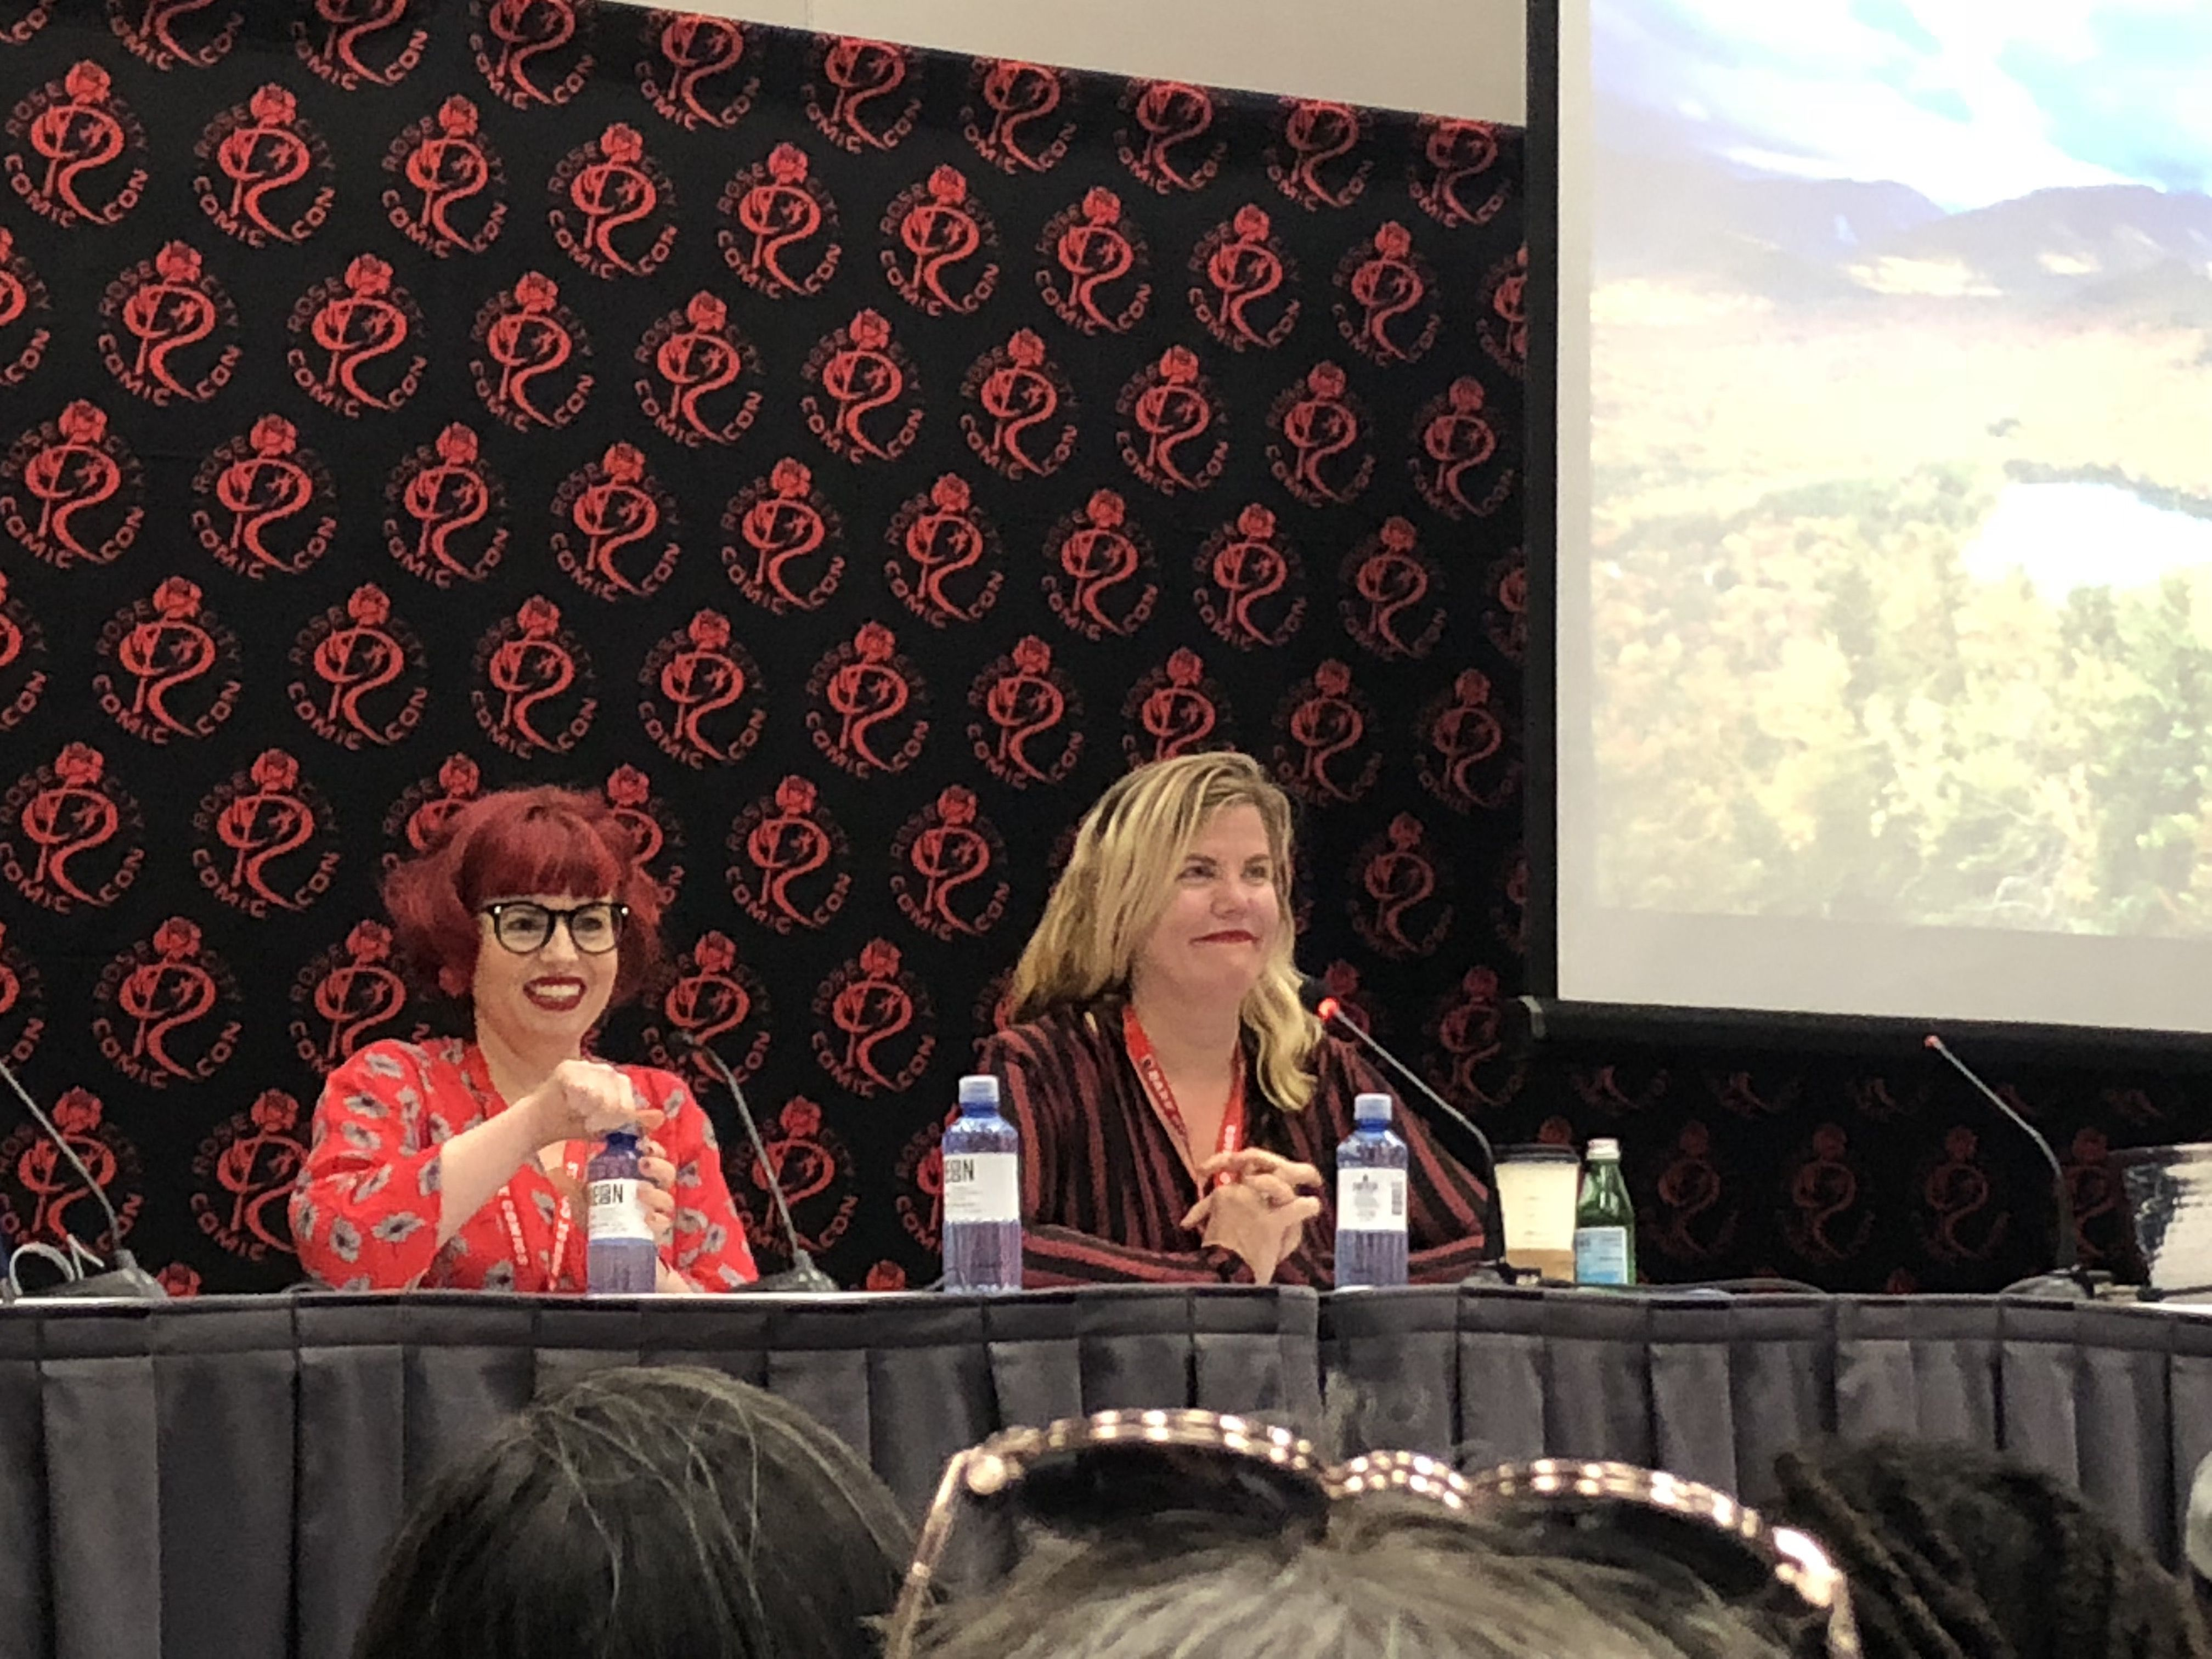 Kelly Sue DeConnick and Chelsea Cain: Making Comics and Trouble